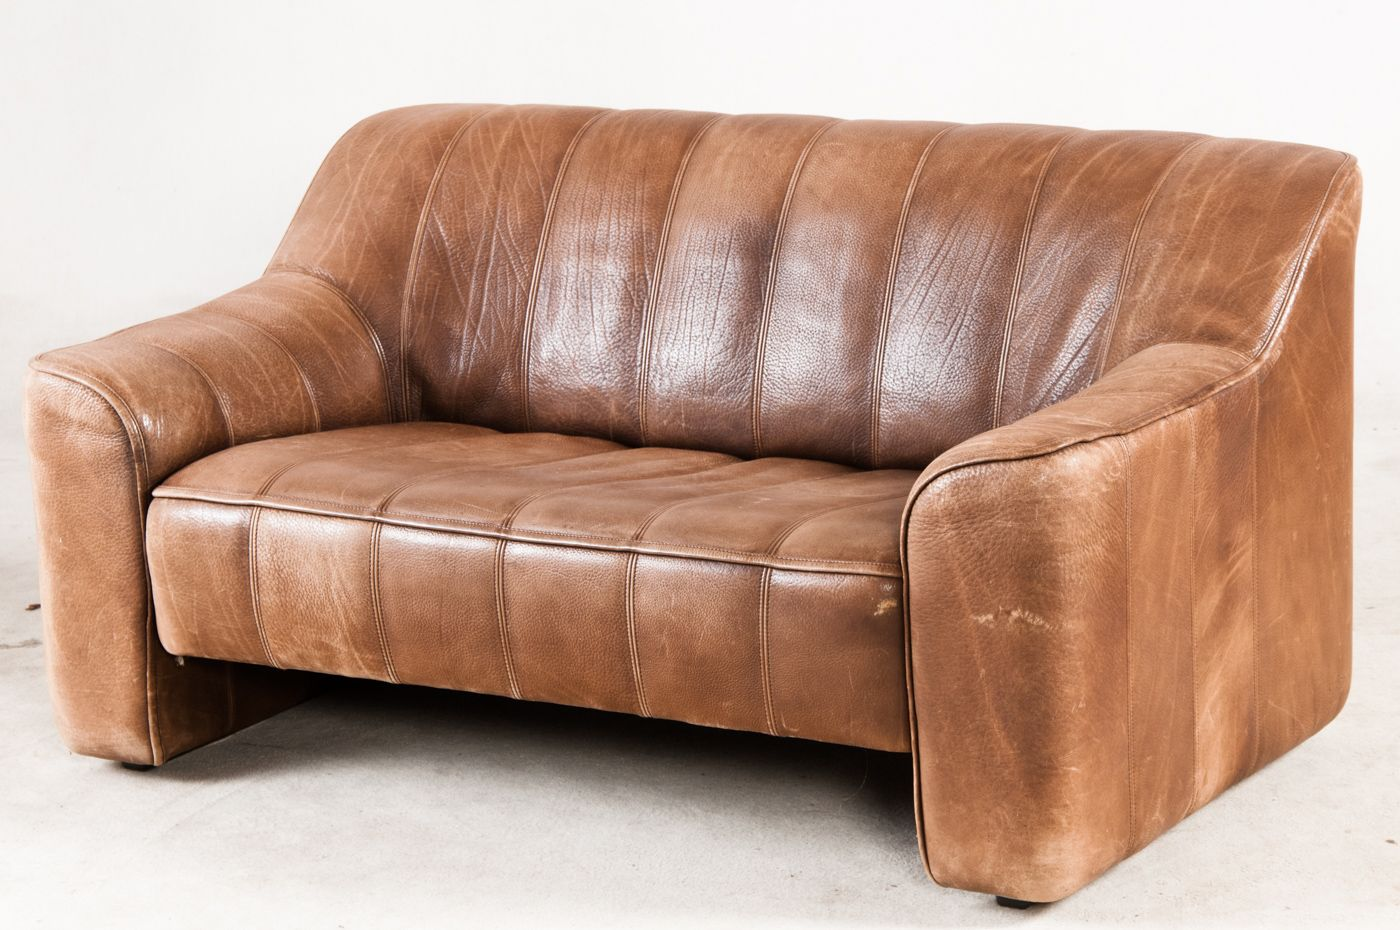 Vintage Swiss Leather Sofa From De Sede